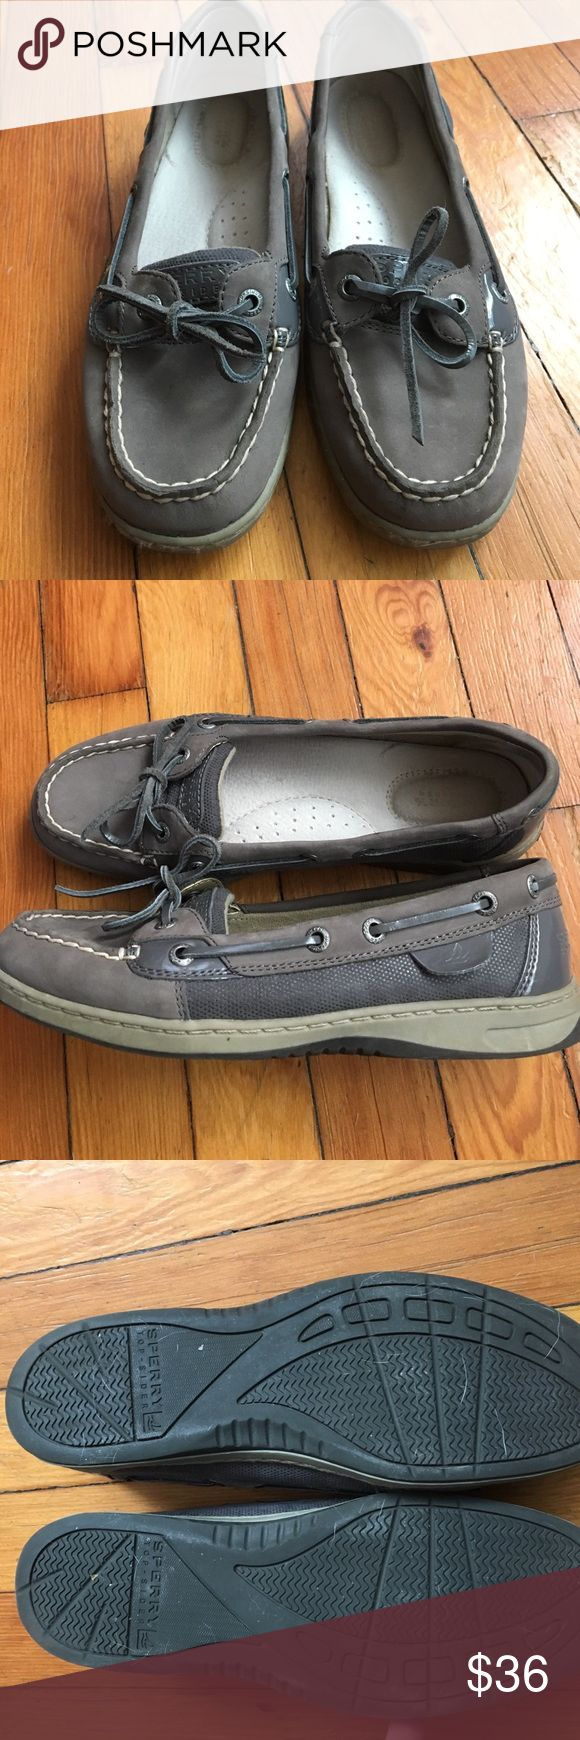 Sperry Angelfish women's size 7 Great condition Women's sperry angelfish. Grey leather with patent accents. Clean soles. Size 7 Sperry Top-Sider Shoes Flats & Loafers